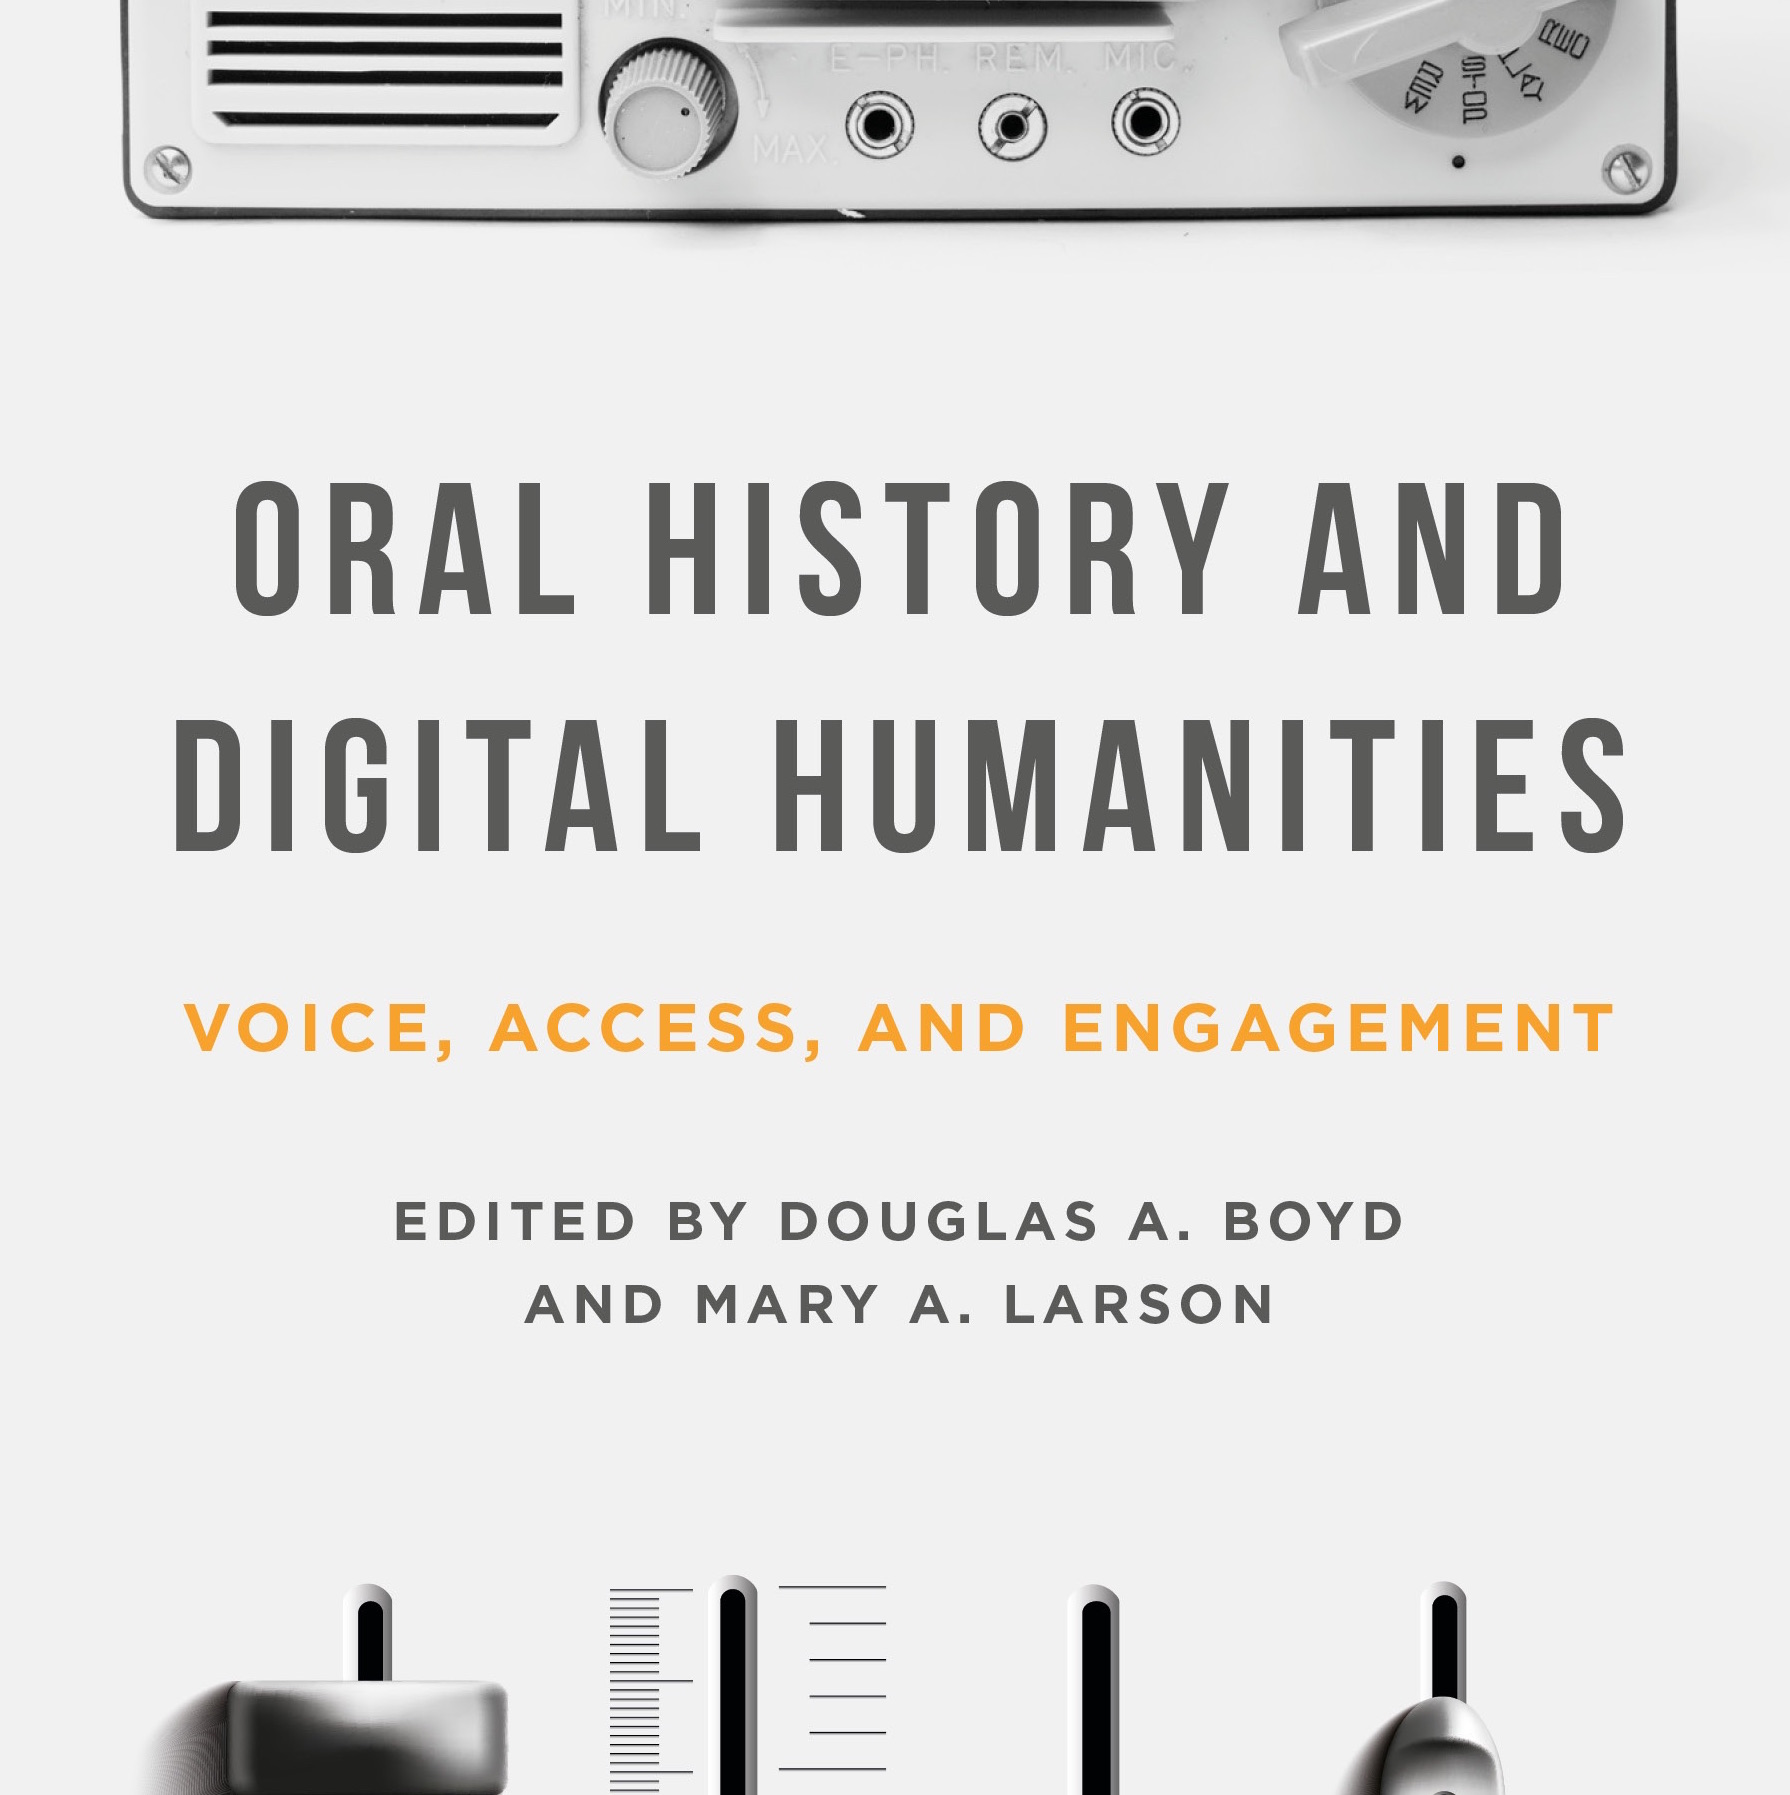 oral history Oral history is the collection and study of historical information about individuals, families, important events, or everyday life using audiotapes, videotapes, or.